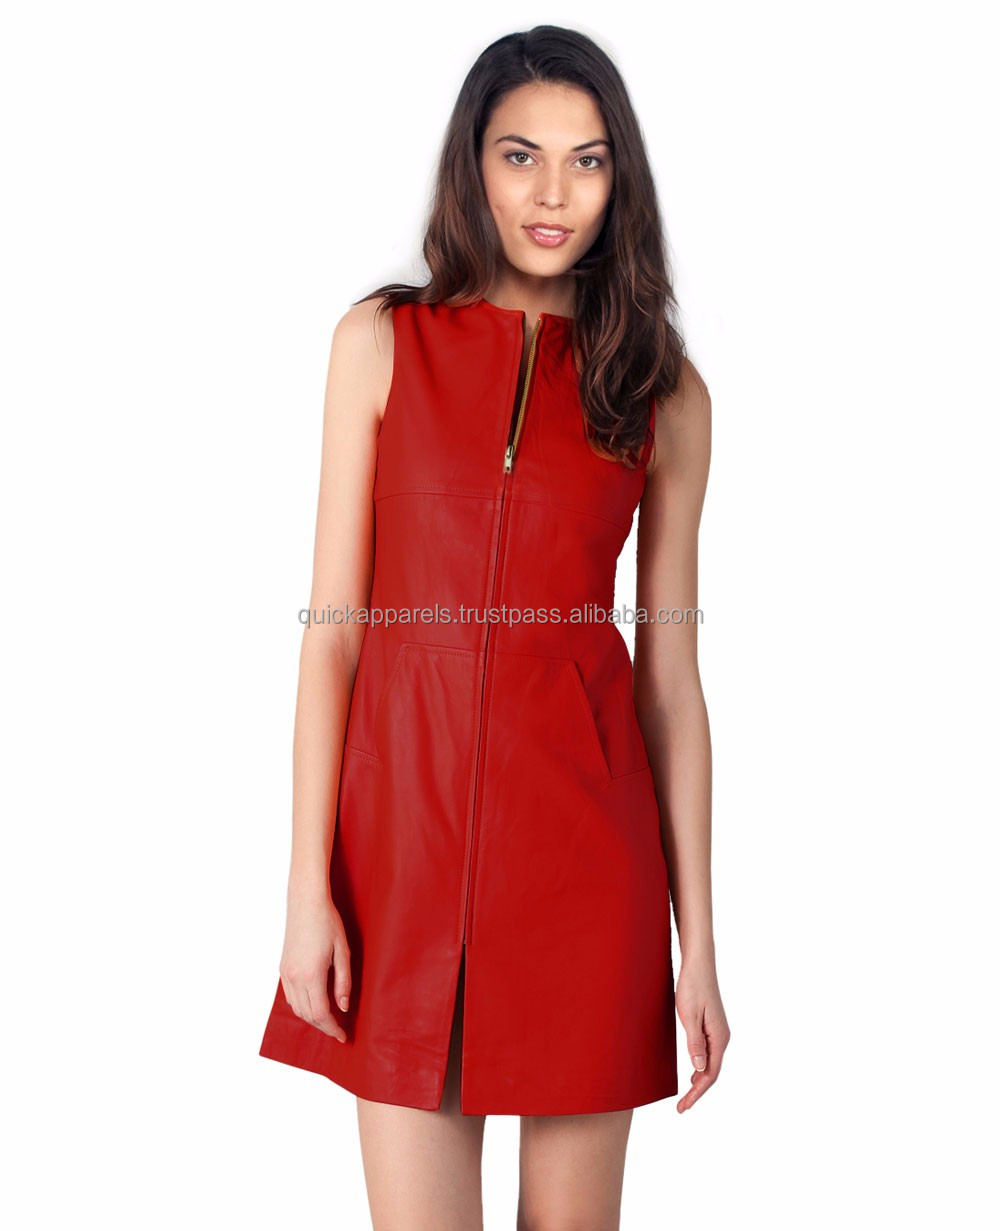 Women Clothing Customized High Quality Patchwork Designer Fashion formal Women